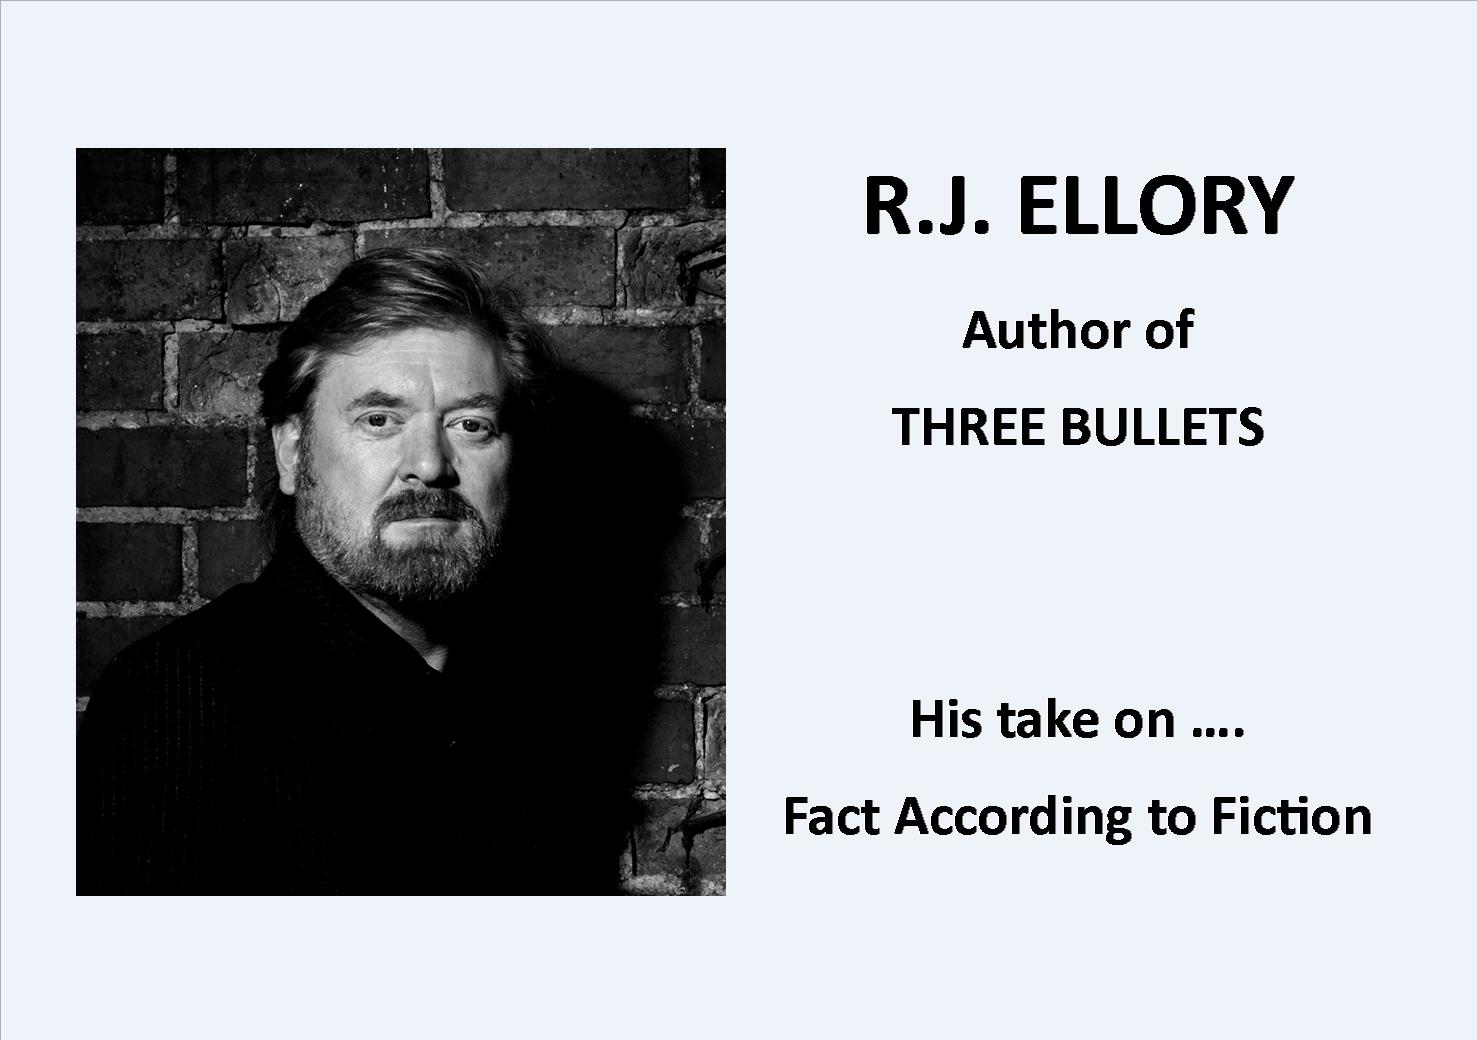 R.J. ELLORY on Fact According to Fiction